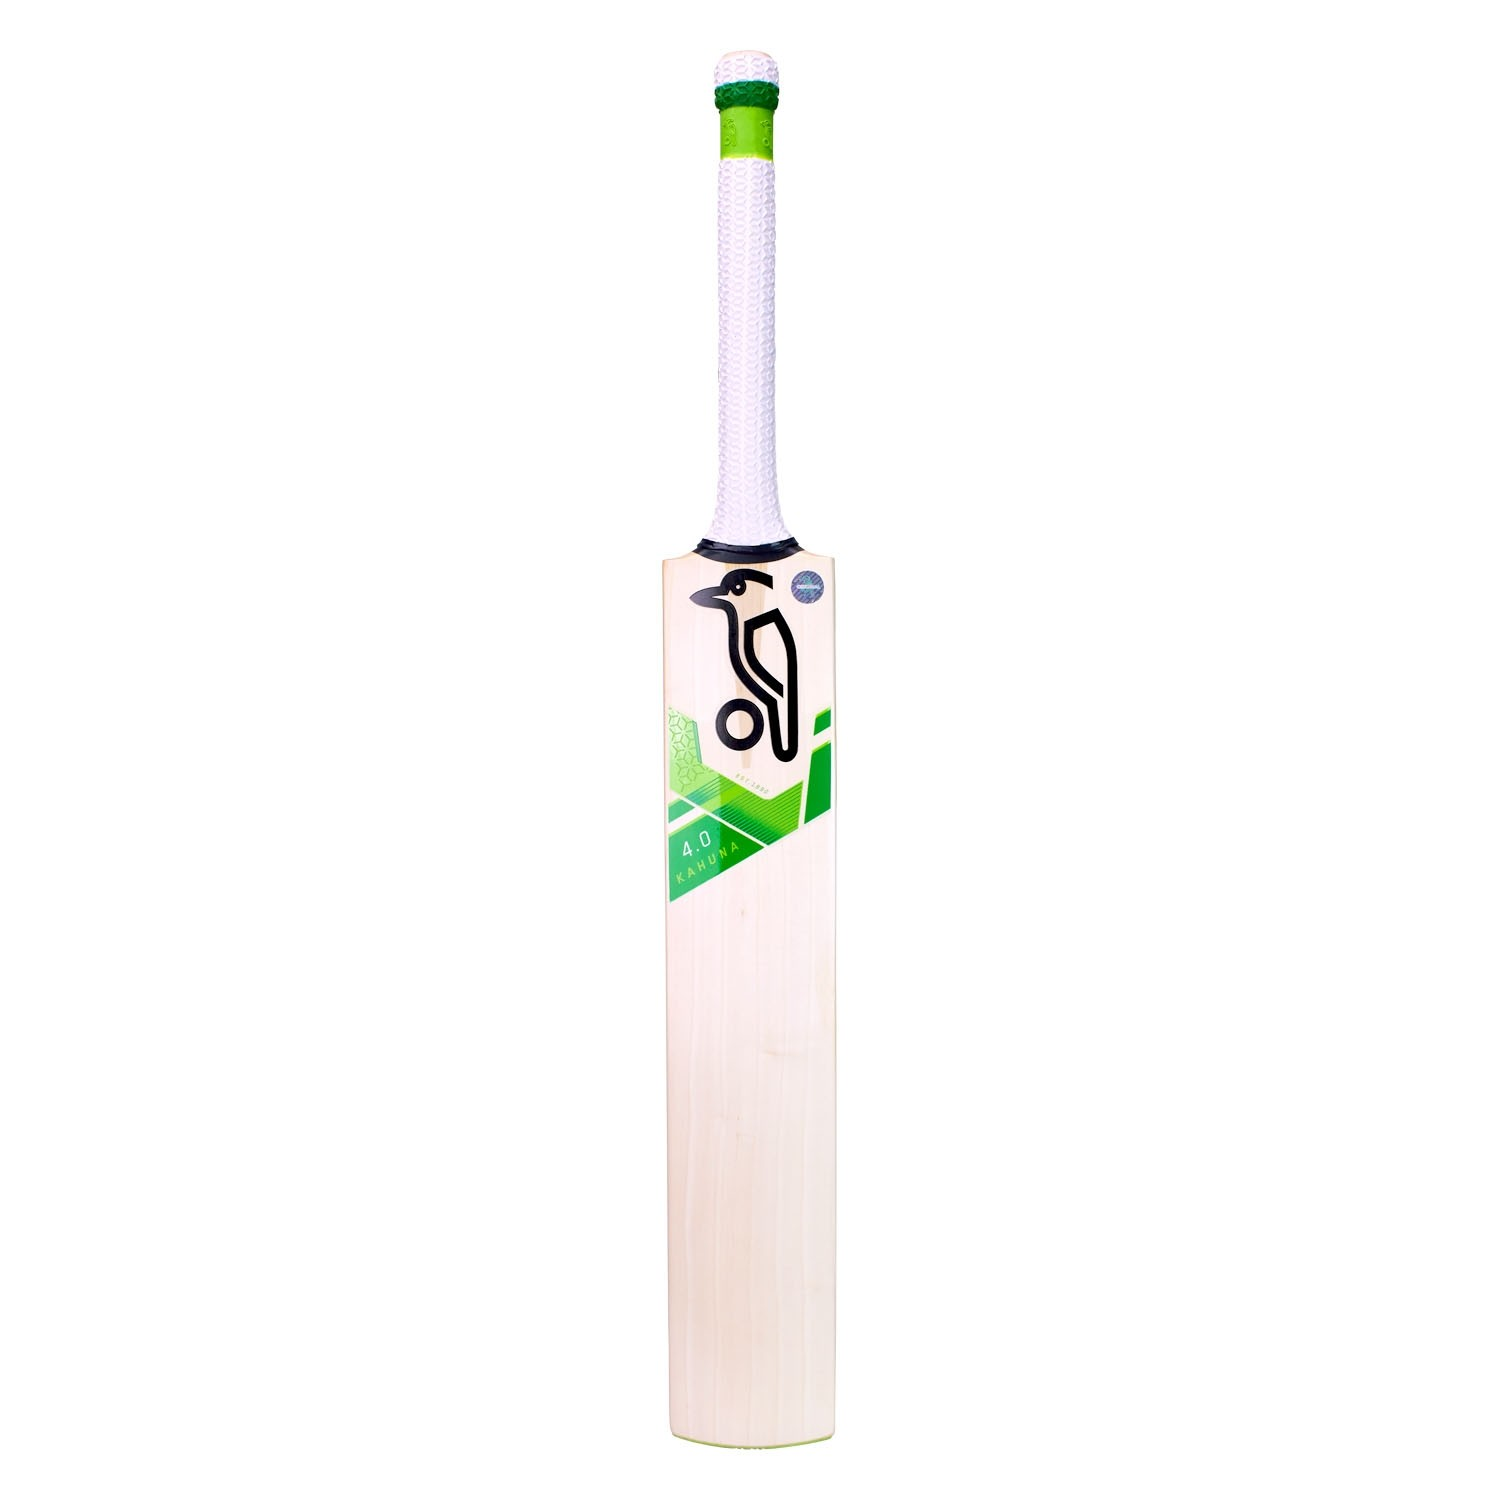 2021 Kookaburra Kahuna 4.0 Cricket Bat